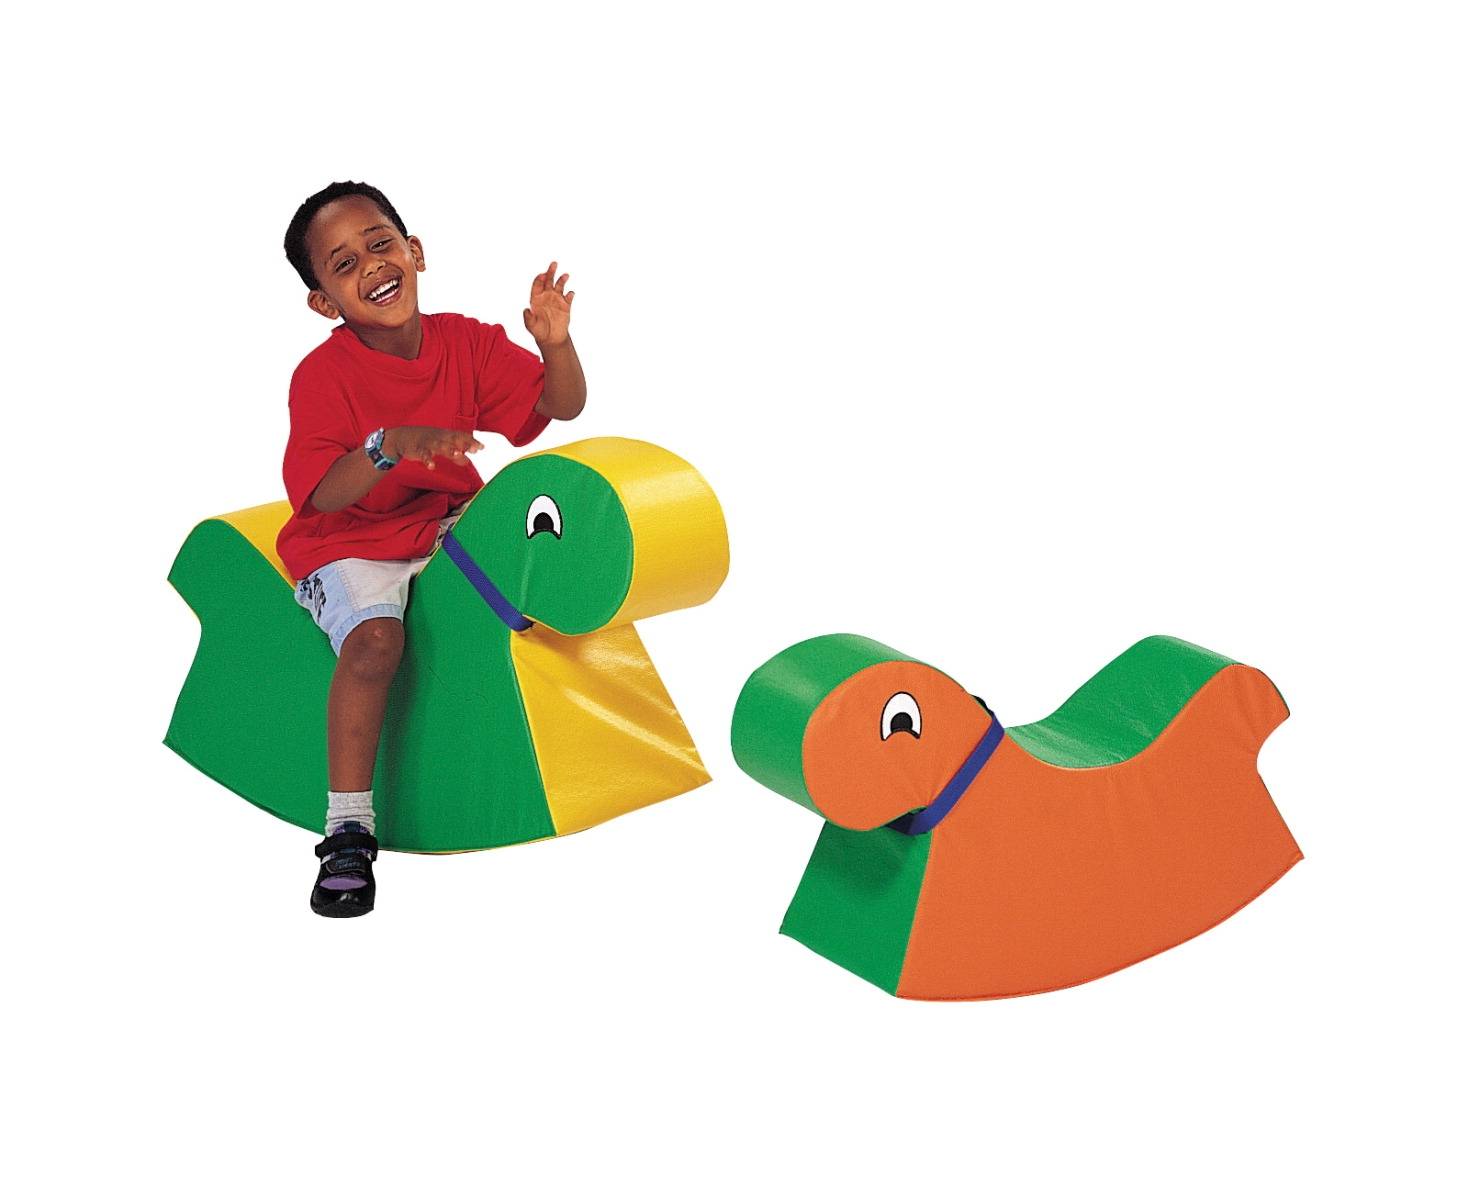 Children's Factory Big Rocky Activity Seat; Green/yellow - 1427827 - Fitness Steppers And Climbers 1427827